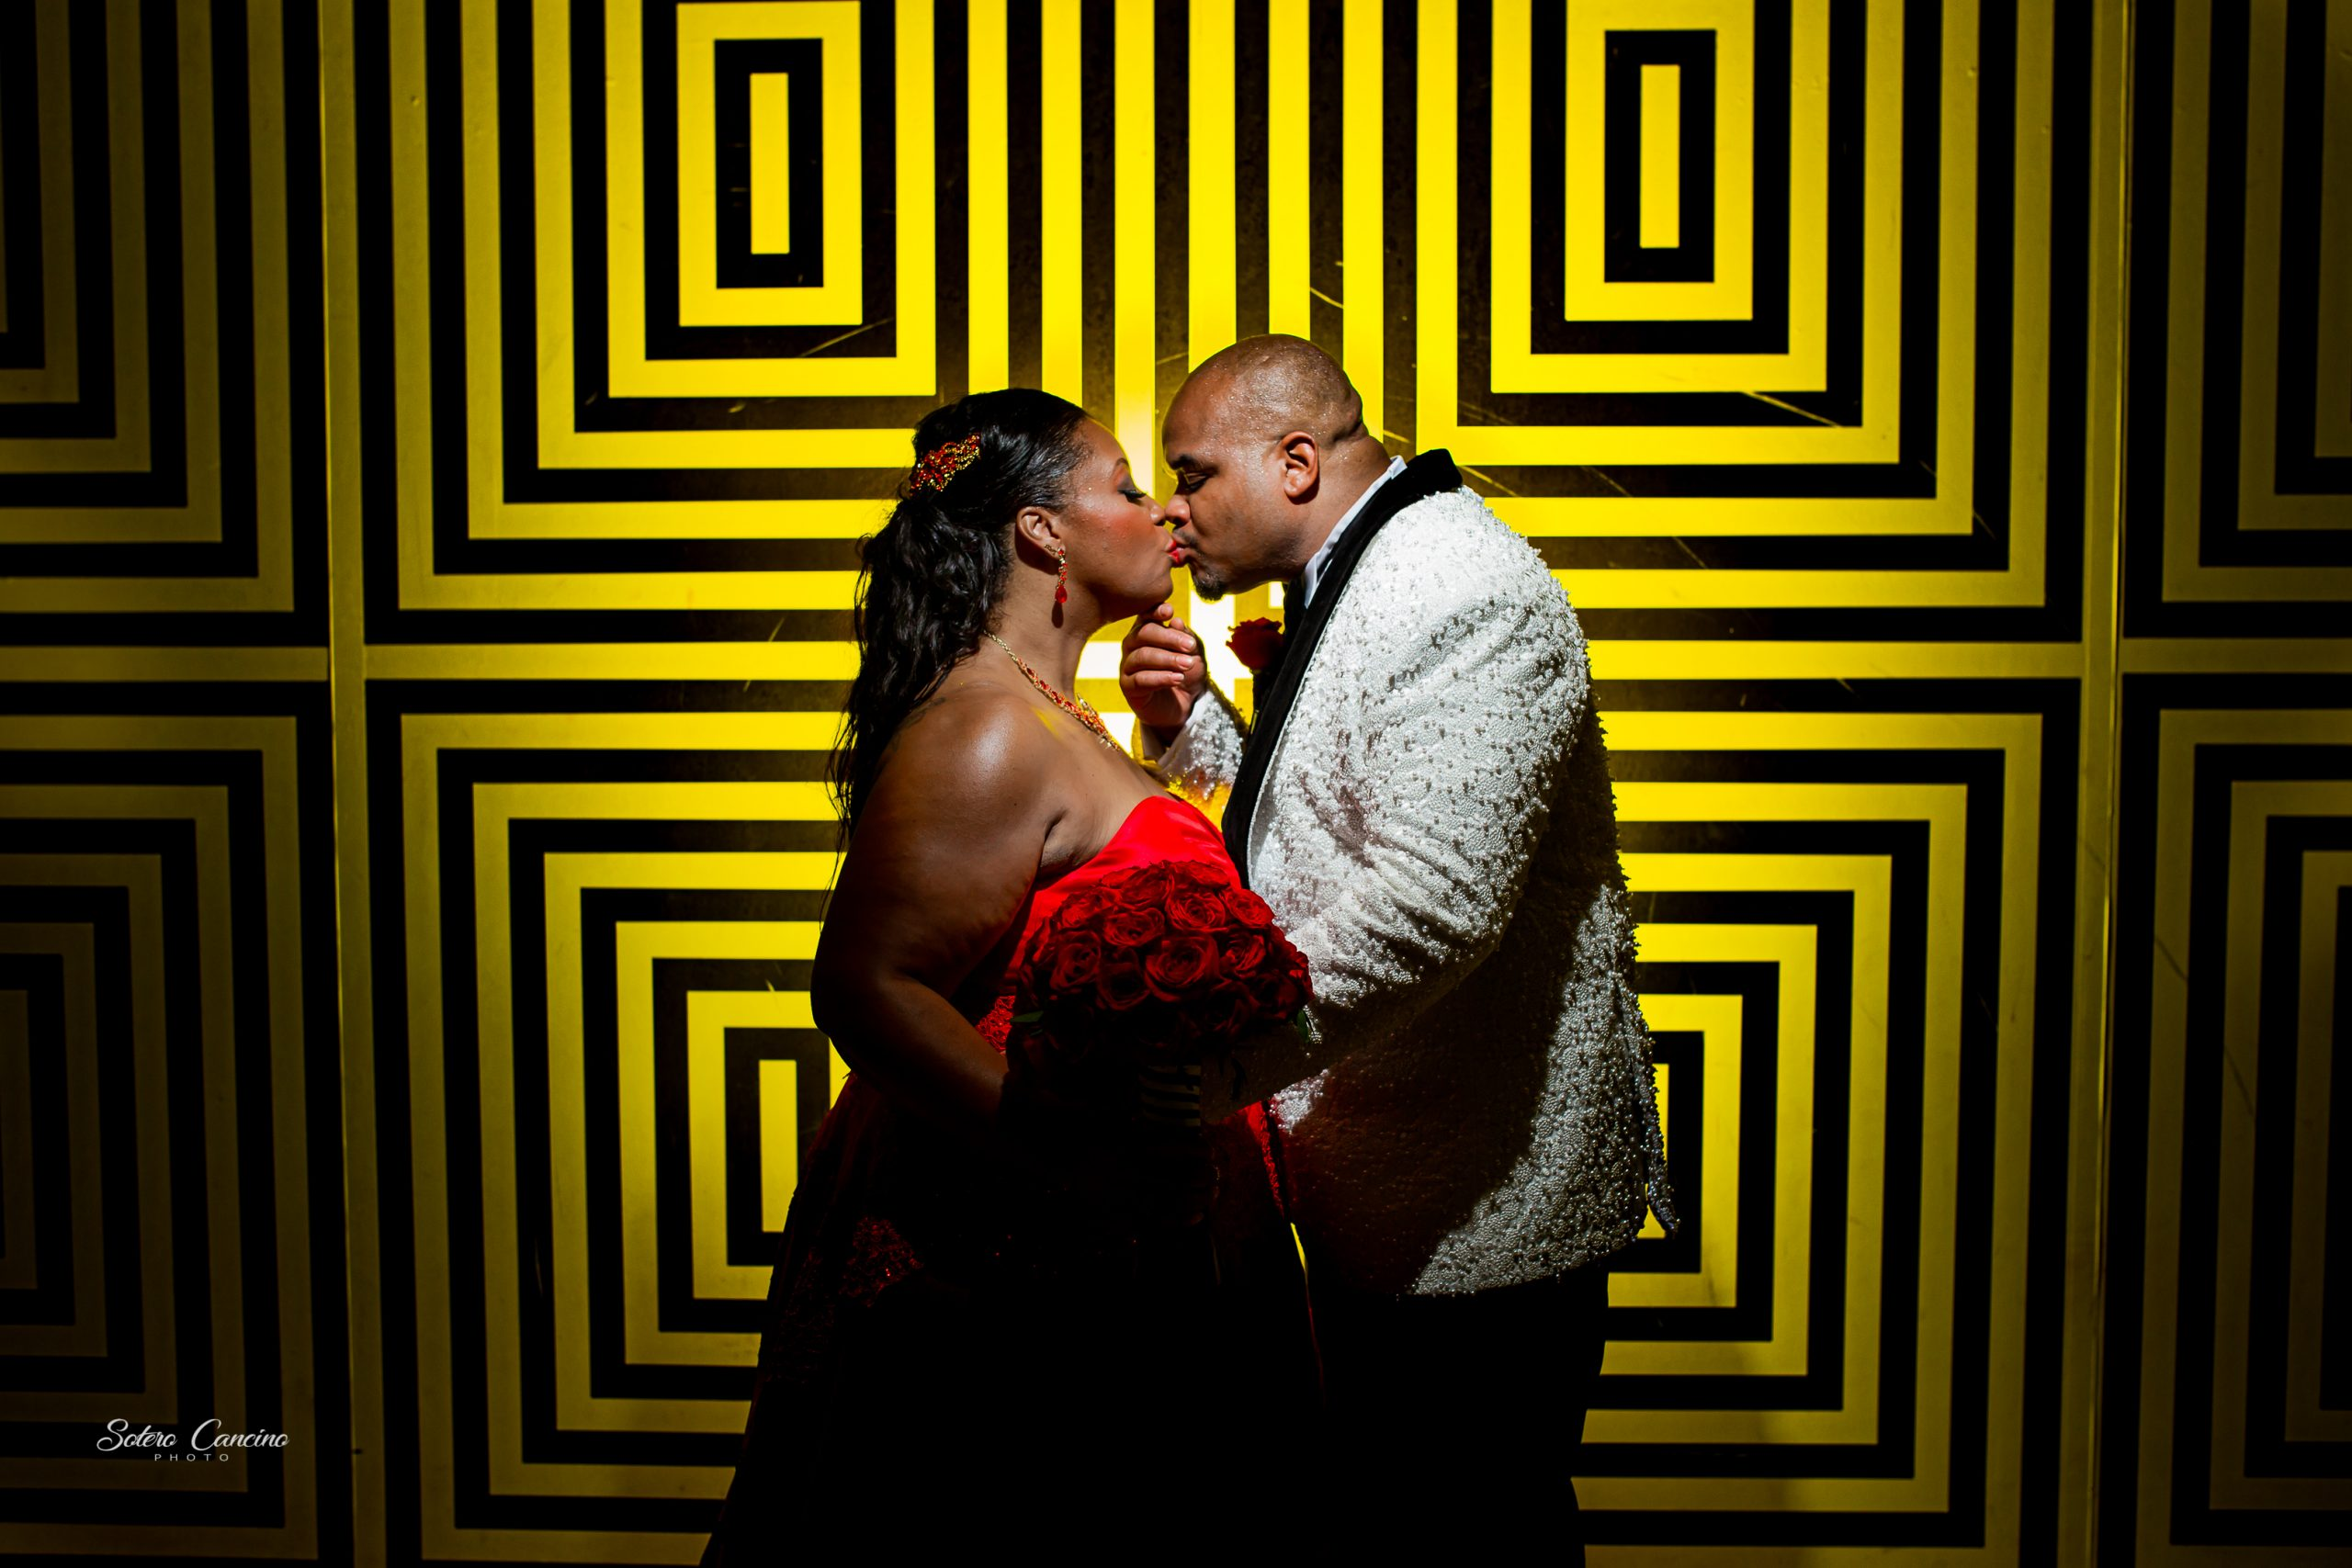 Sneak Peek Chanda & Forrest-23